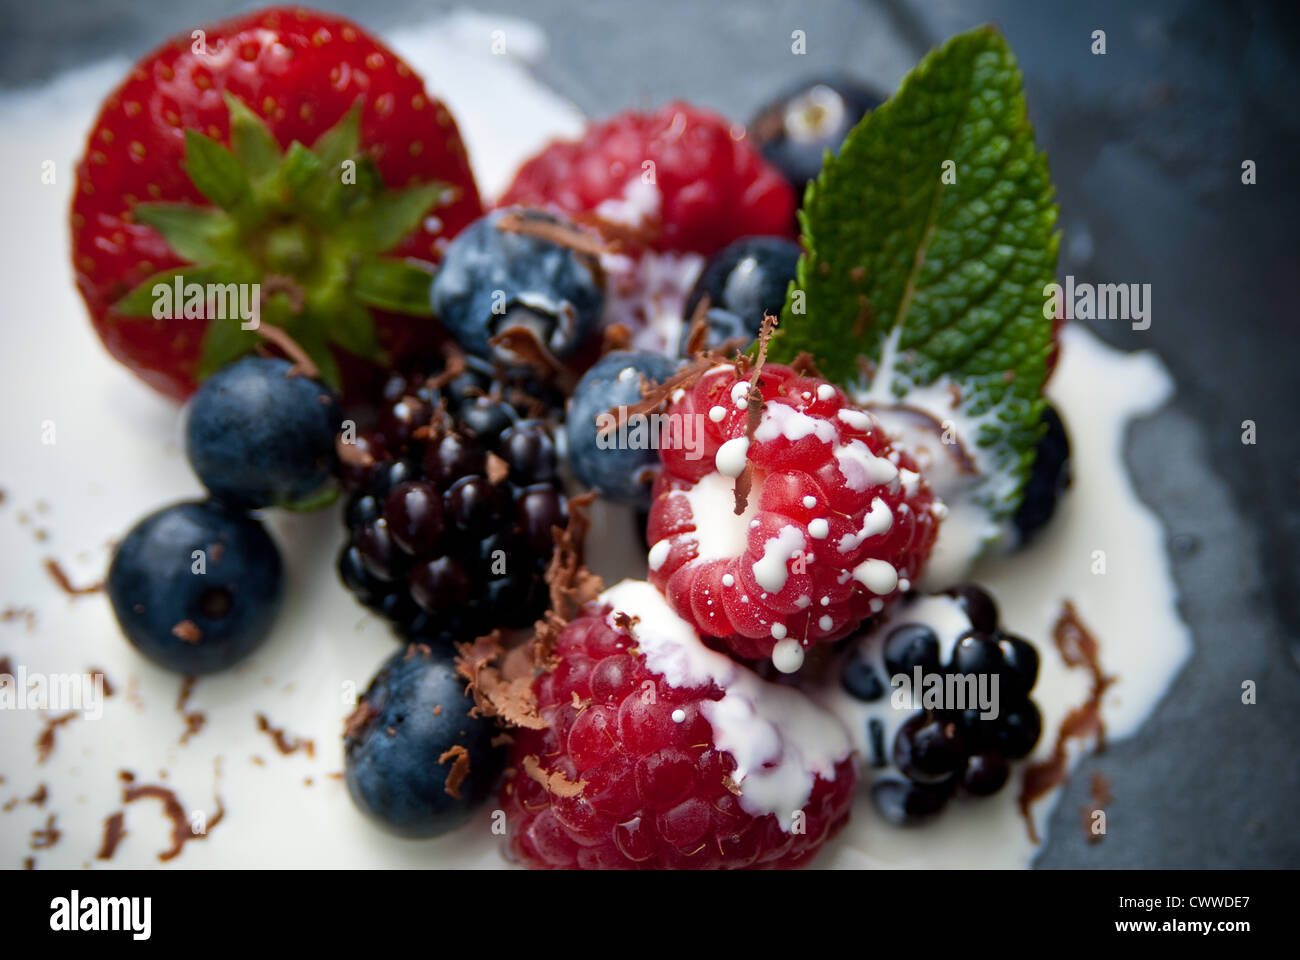 English Summer Fruits Blueberries Raspberries Stock Photos & English